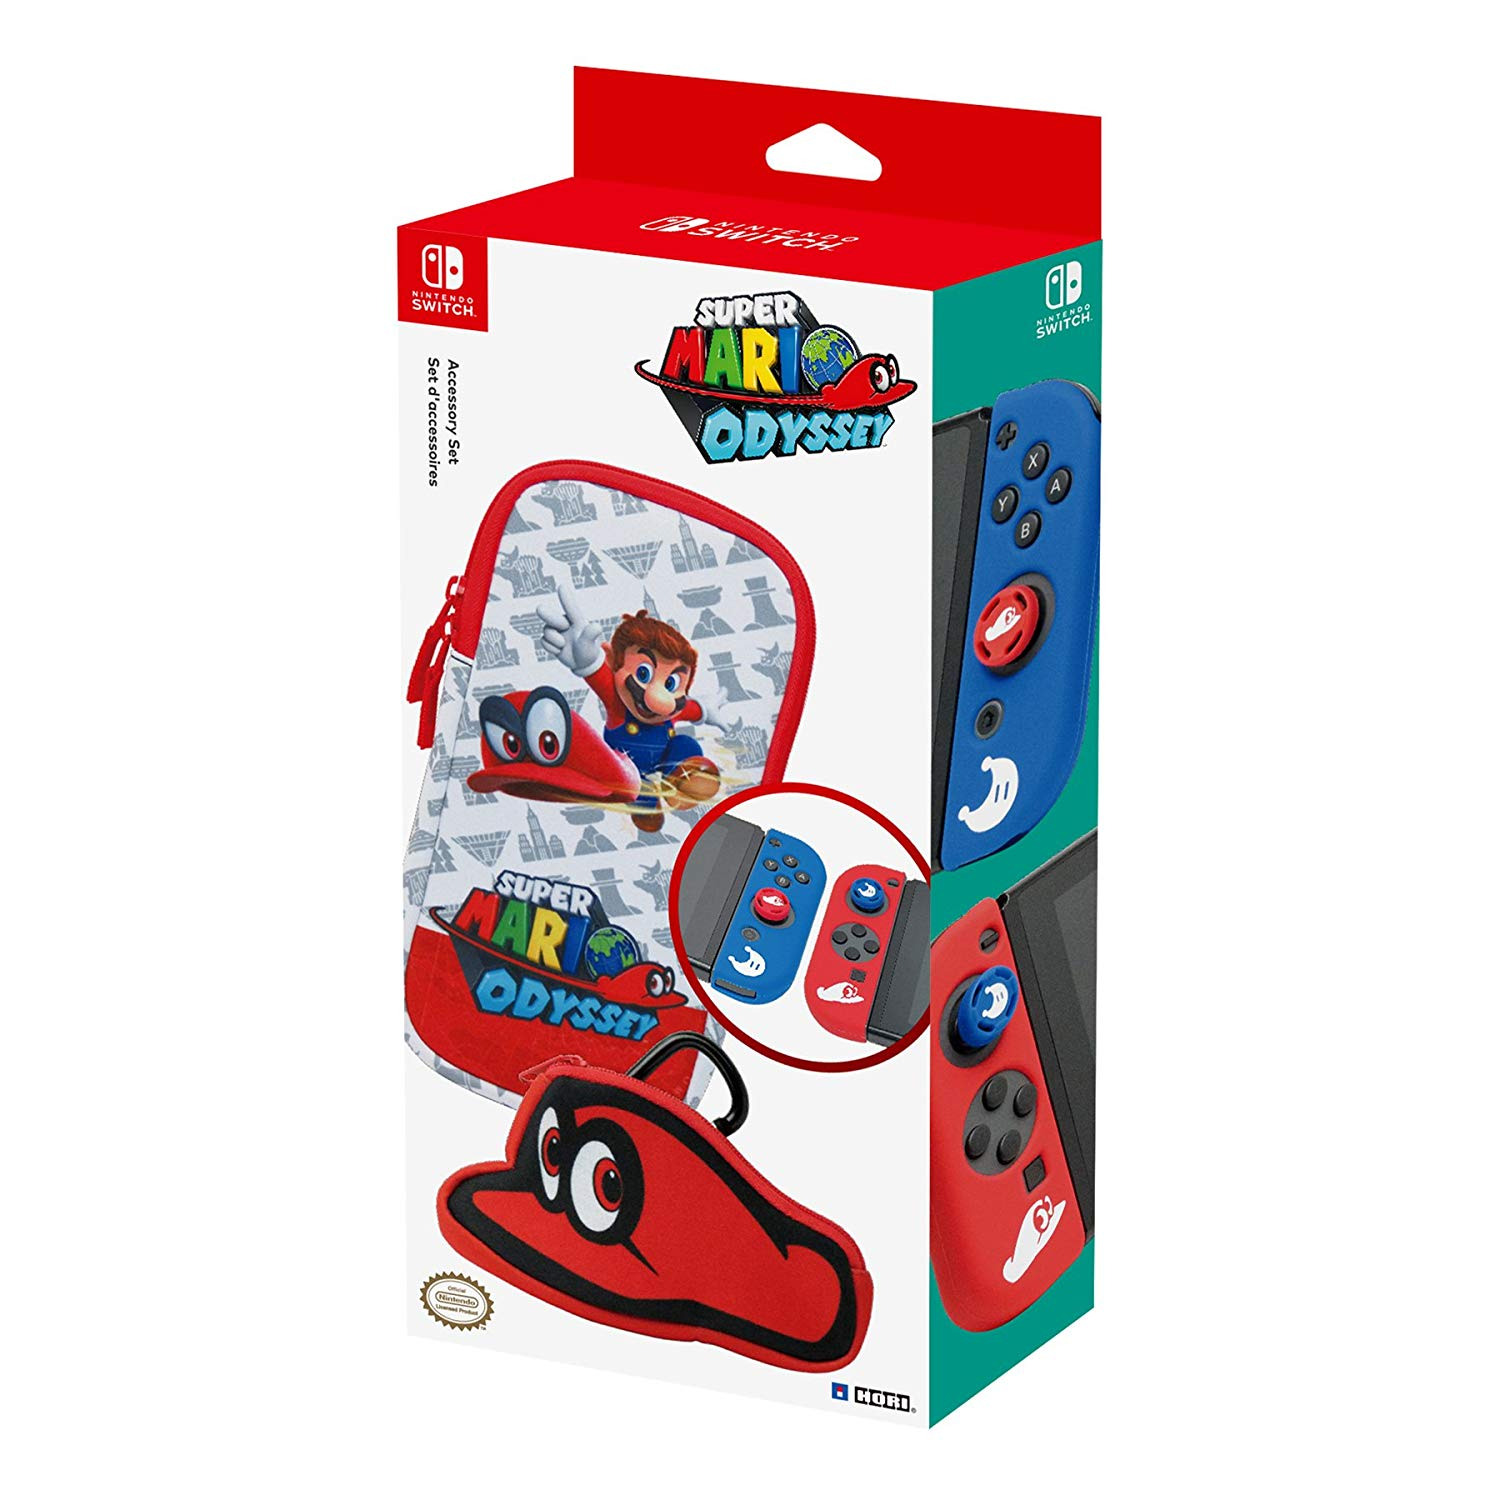 Hori Super Mario Odyssey Accessory Set for Nintendo Switch